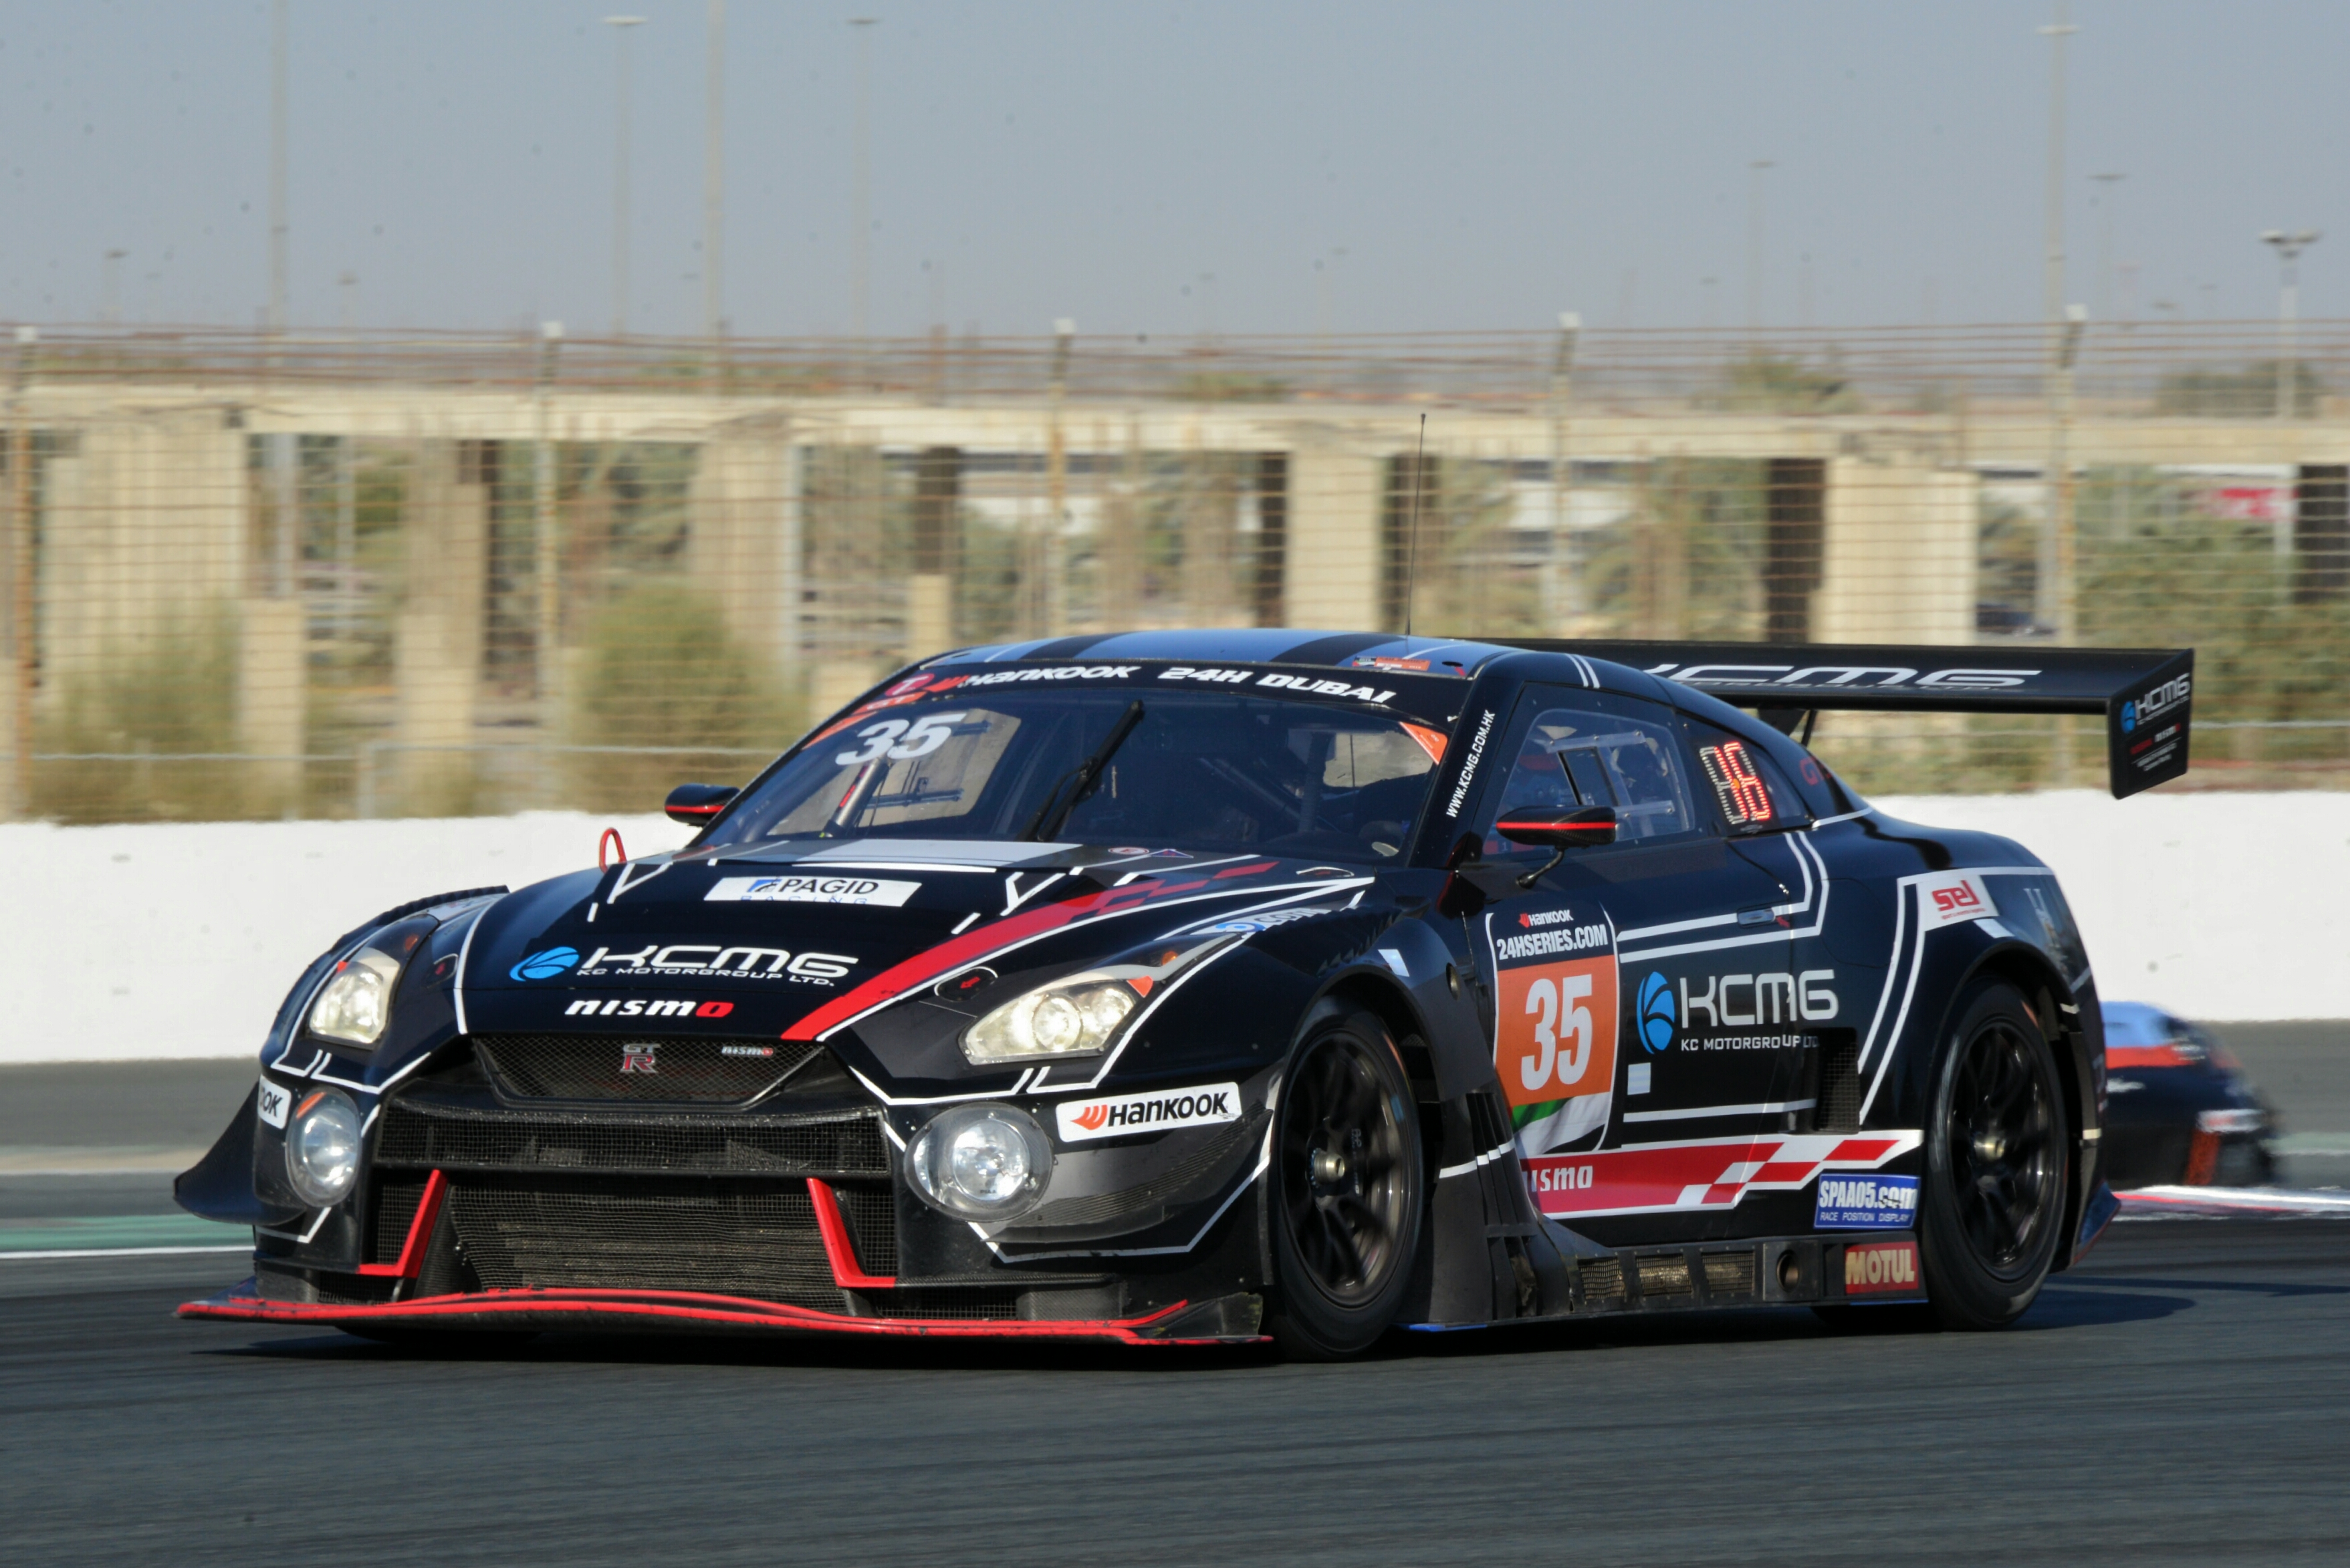 KCMG Nissan GT-R's strong pace goes unrewarded in Dubai ...